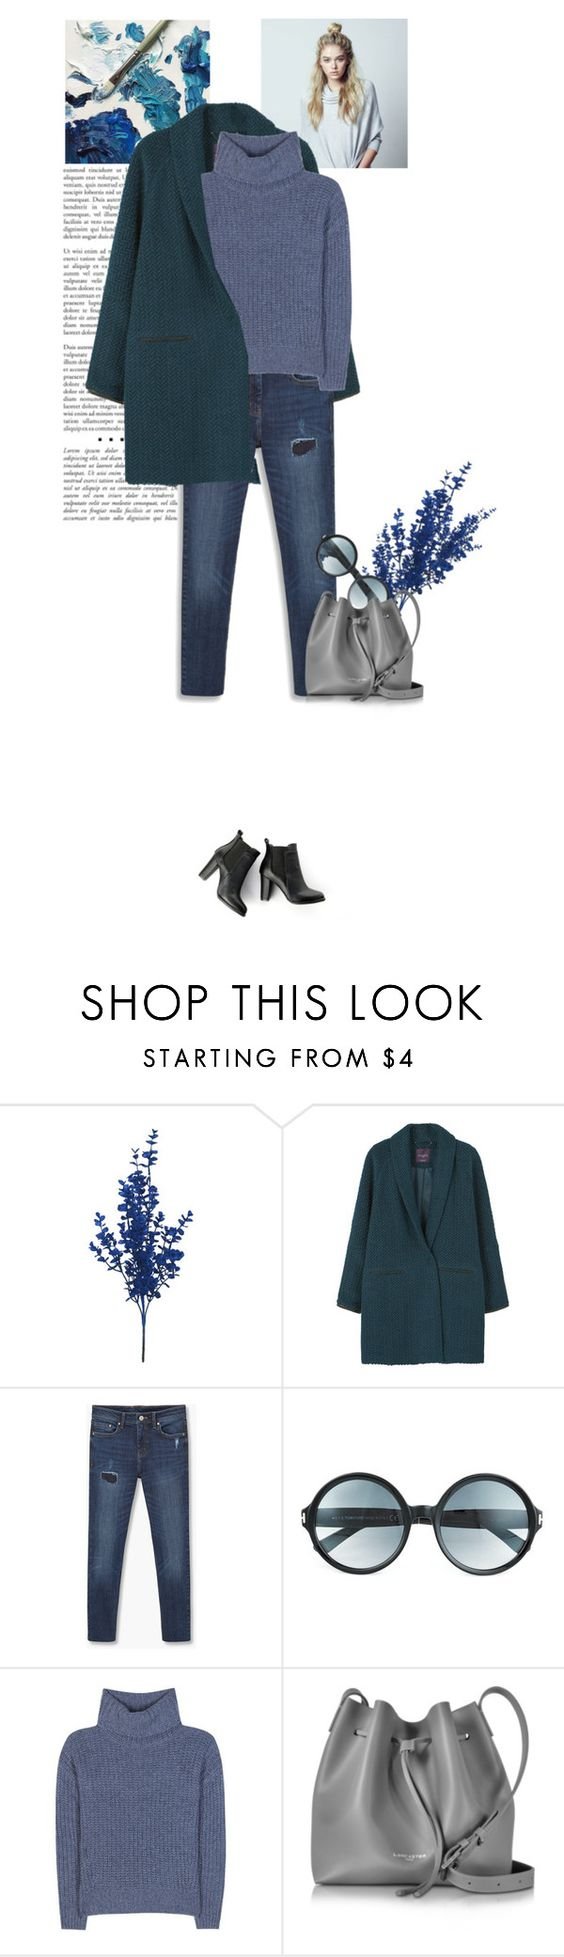 """""""Cozy cashmere sweater"""" by mari-meri ❤ liked on Polyvore featuring MANGO, Tom Ford, Loro Piana, Lancaster and SWEET MANGO"""